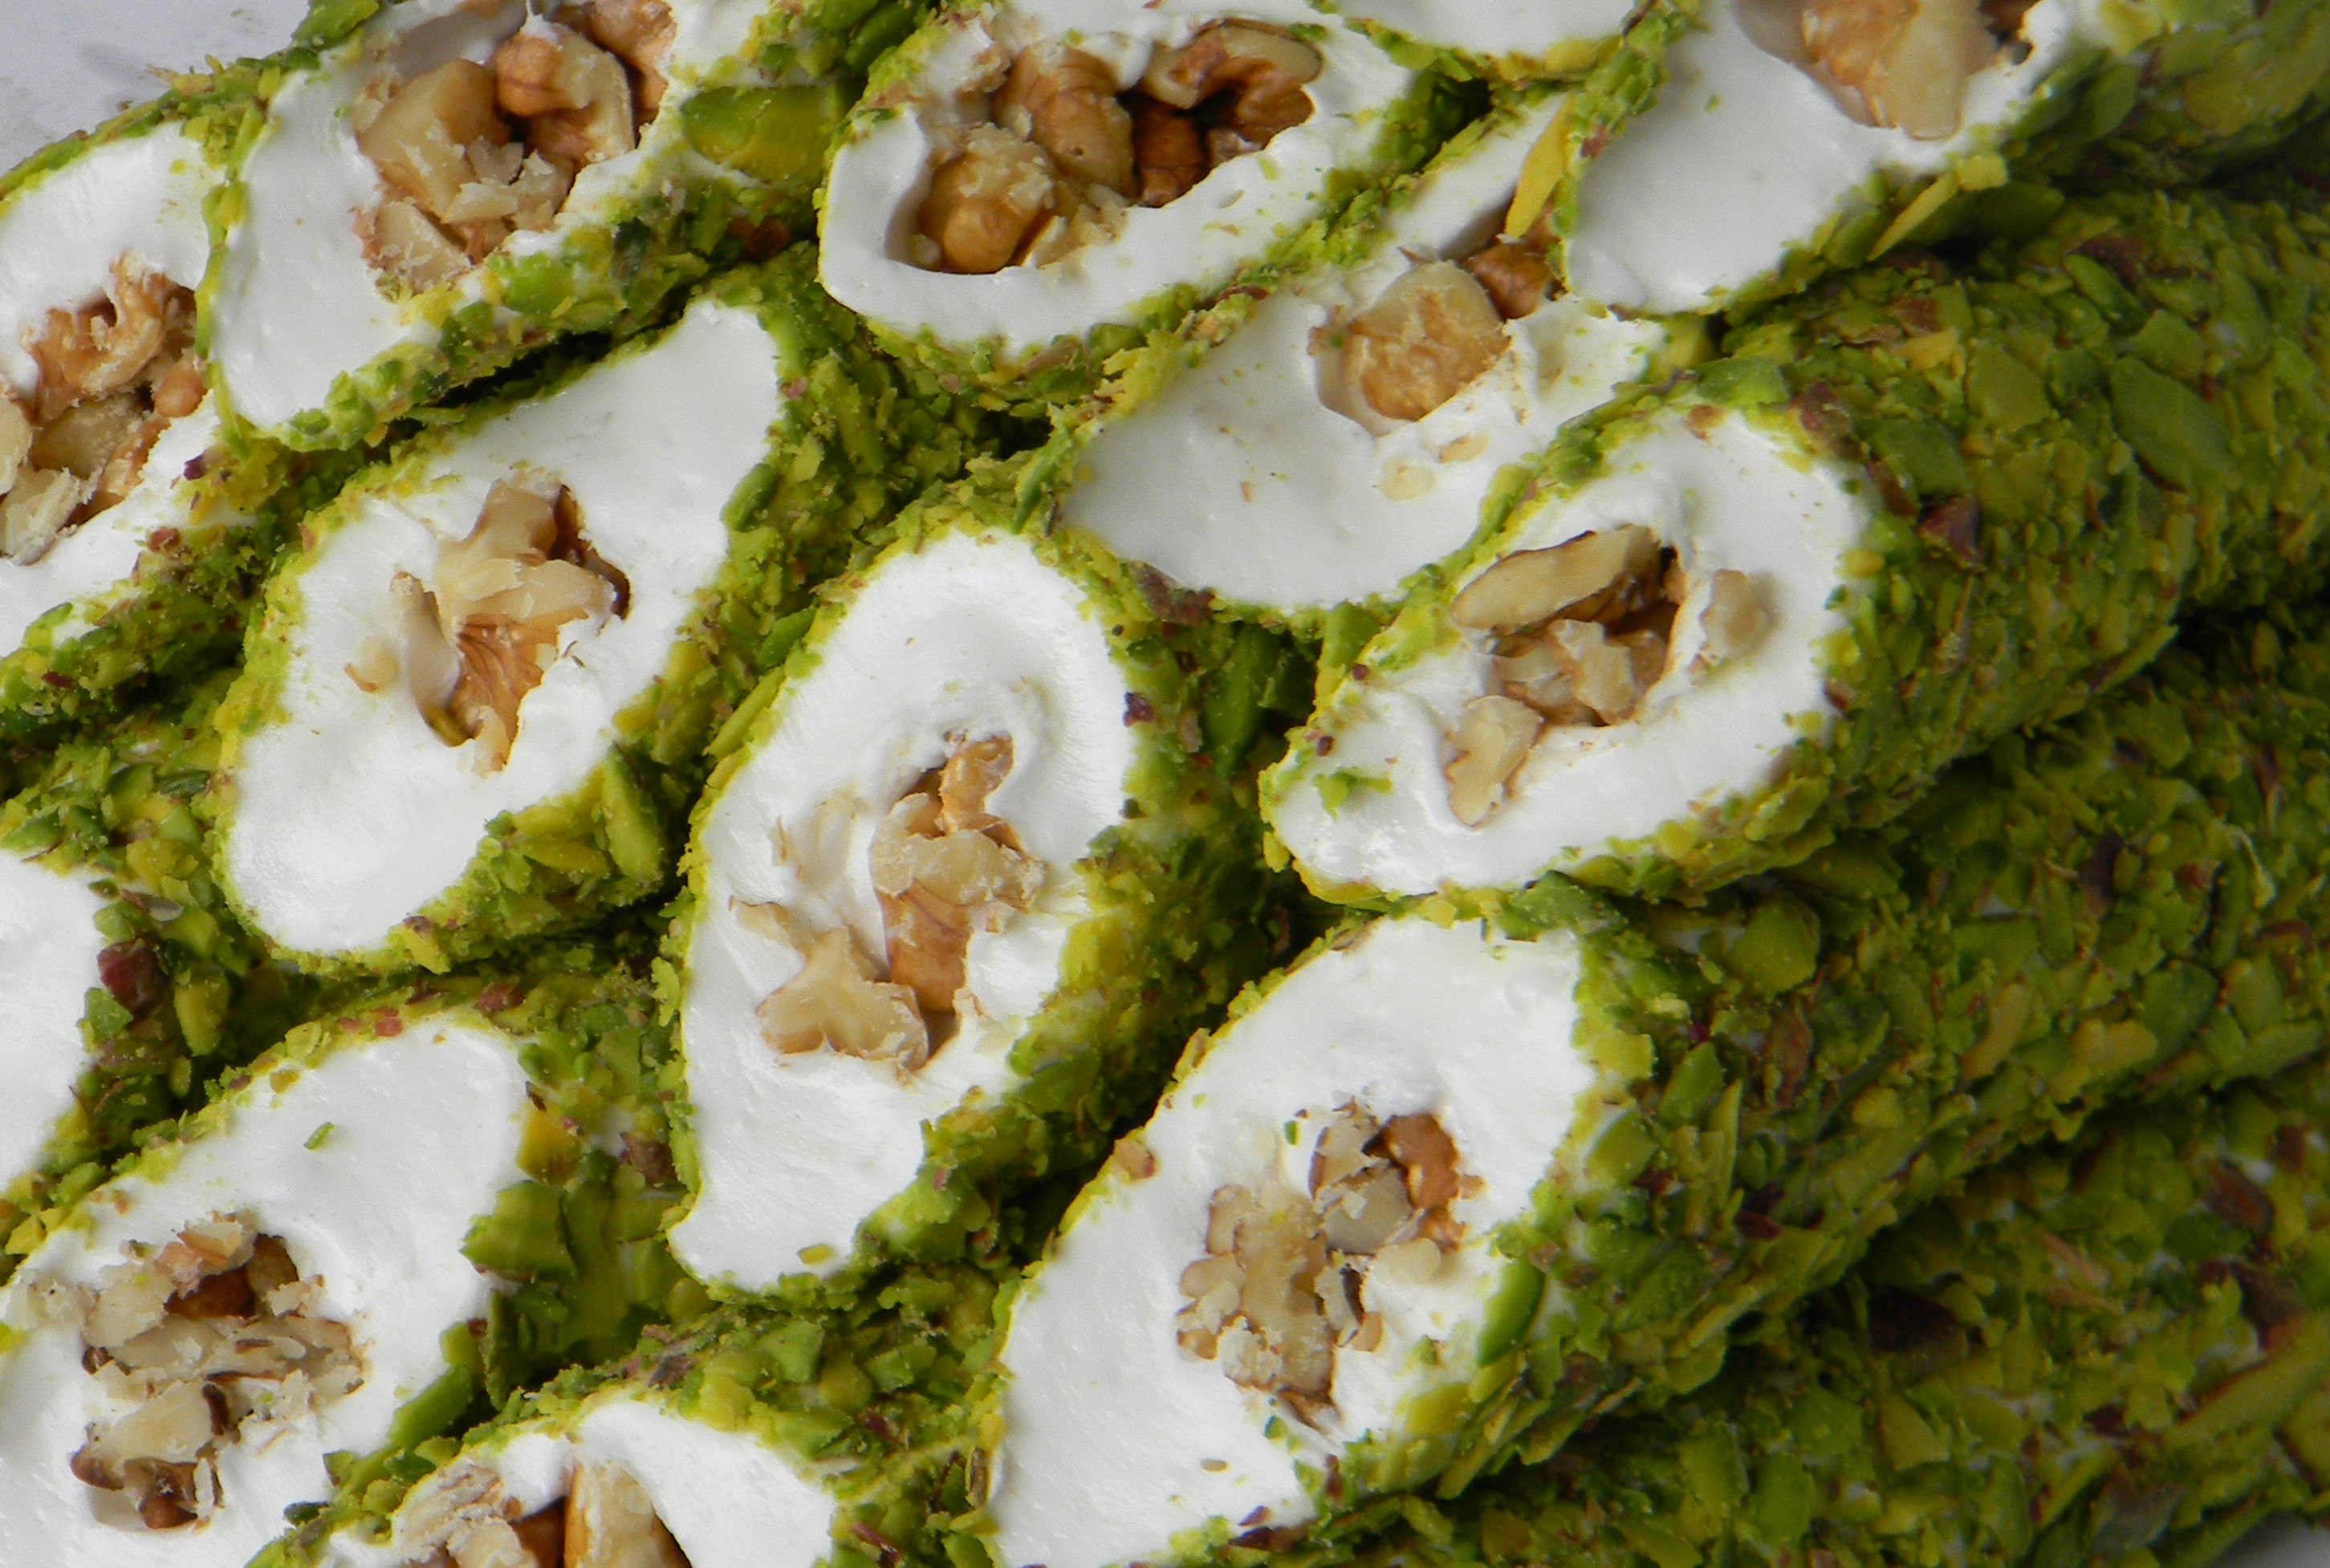 Pistachio Coated Dipped Walnut Delight